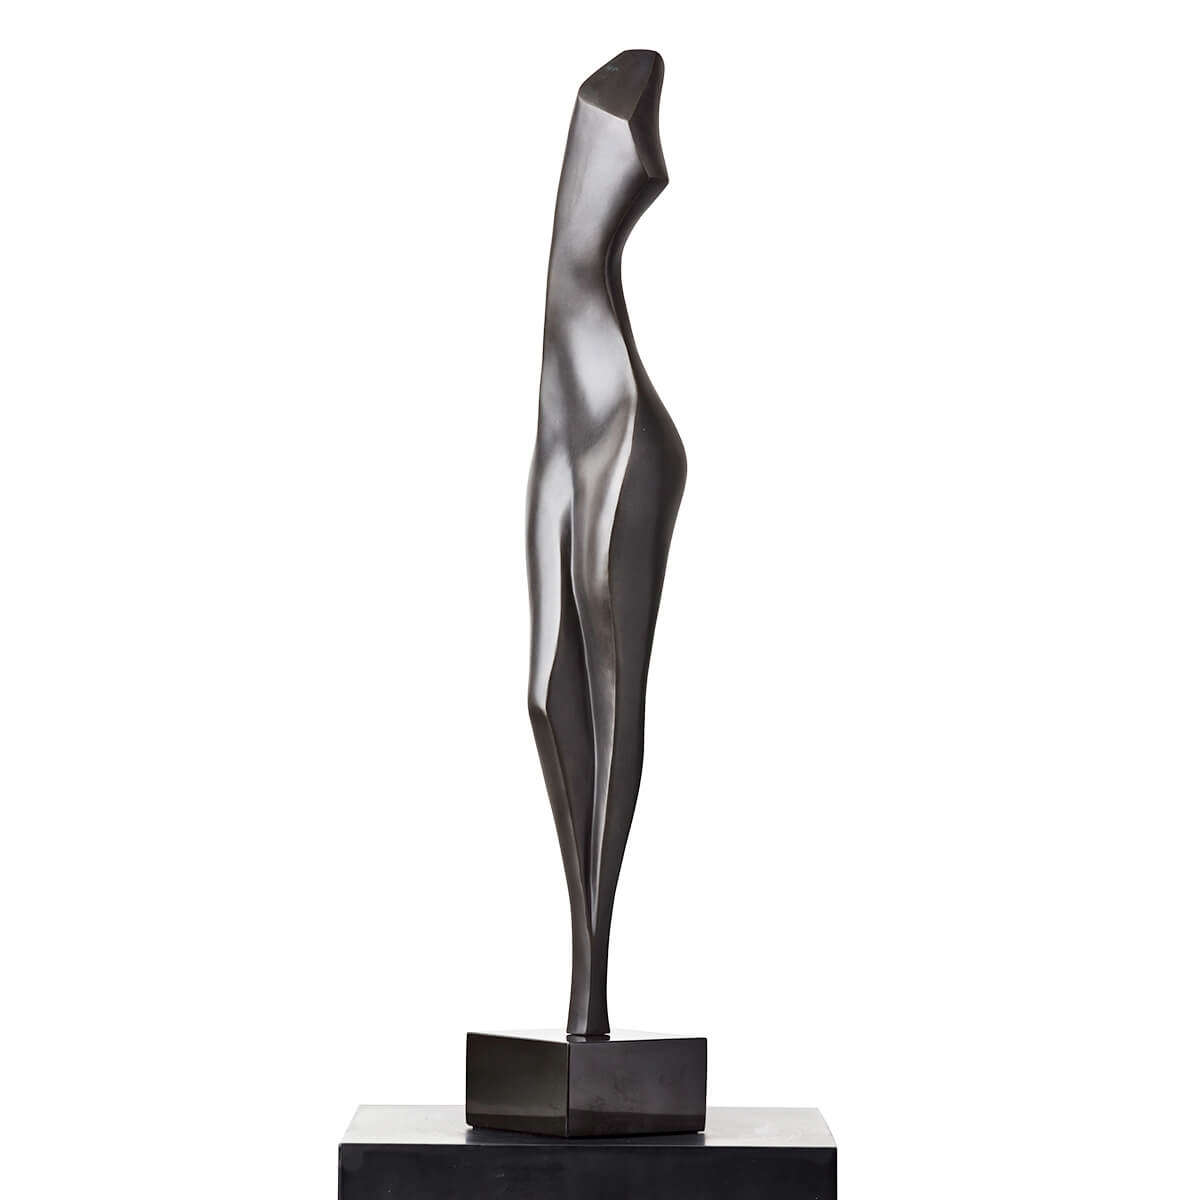 Robert-Helle-Sculpture-Gallery-Female-Mystique-2a-1200x1200